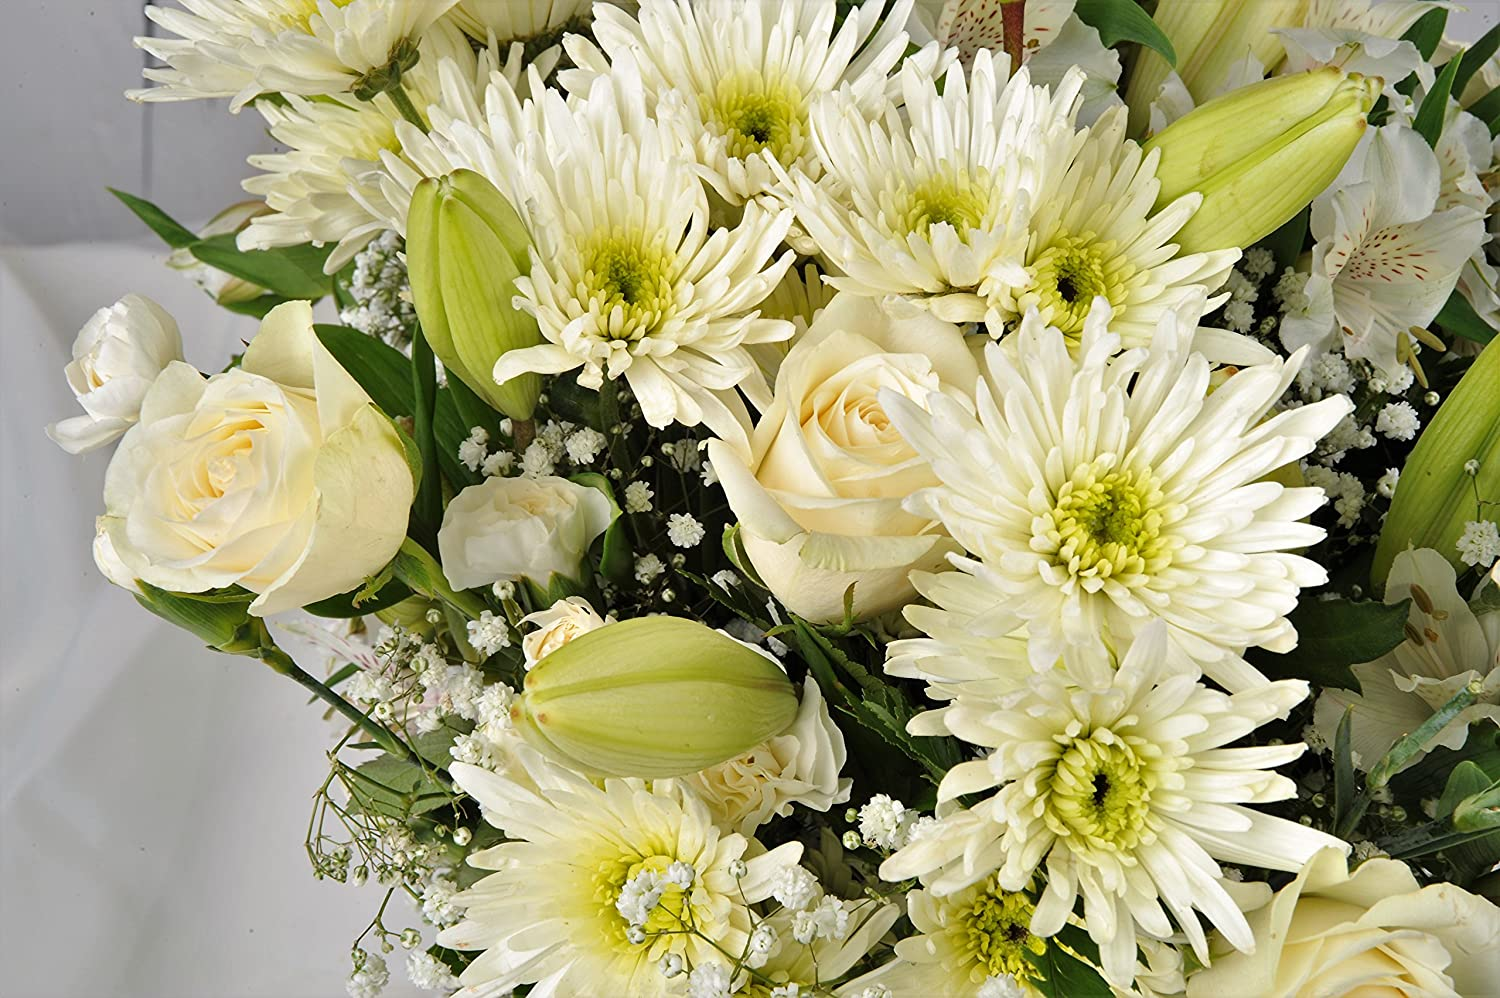 Sympathy flowers delivered next day beautiful white luxury fresh sympathy flowers delivered next day beautiful white luxury fresh flower bouquet free uk delivery within 1hr window 7 days a week send for bereavement izmirmasajfo